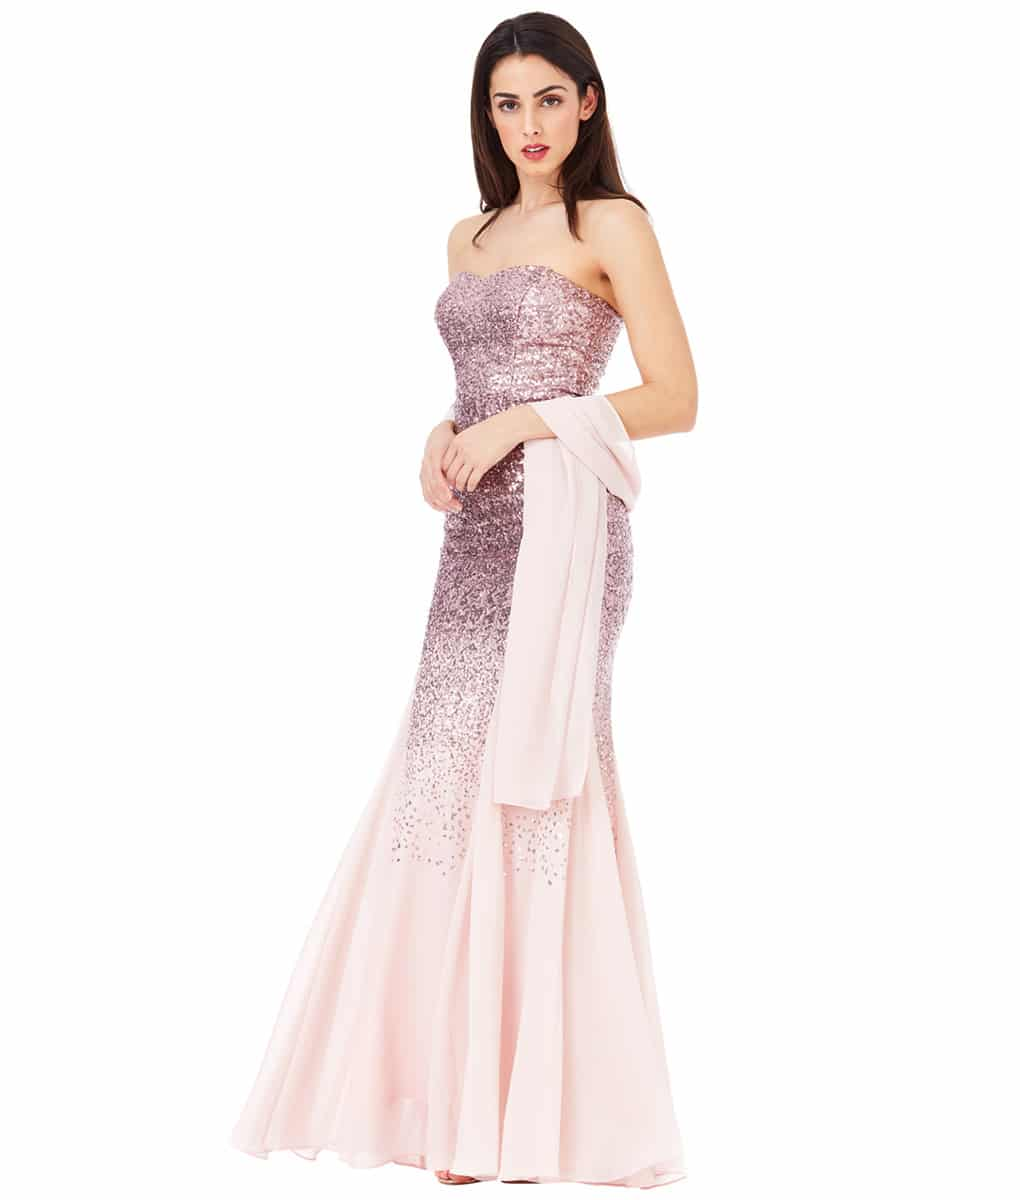 Alila-Strapless-Rose-Sequin-gown-city-goddess